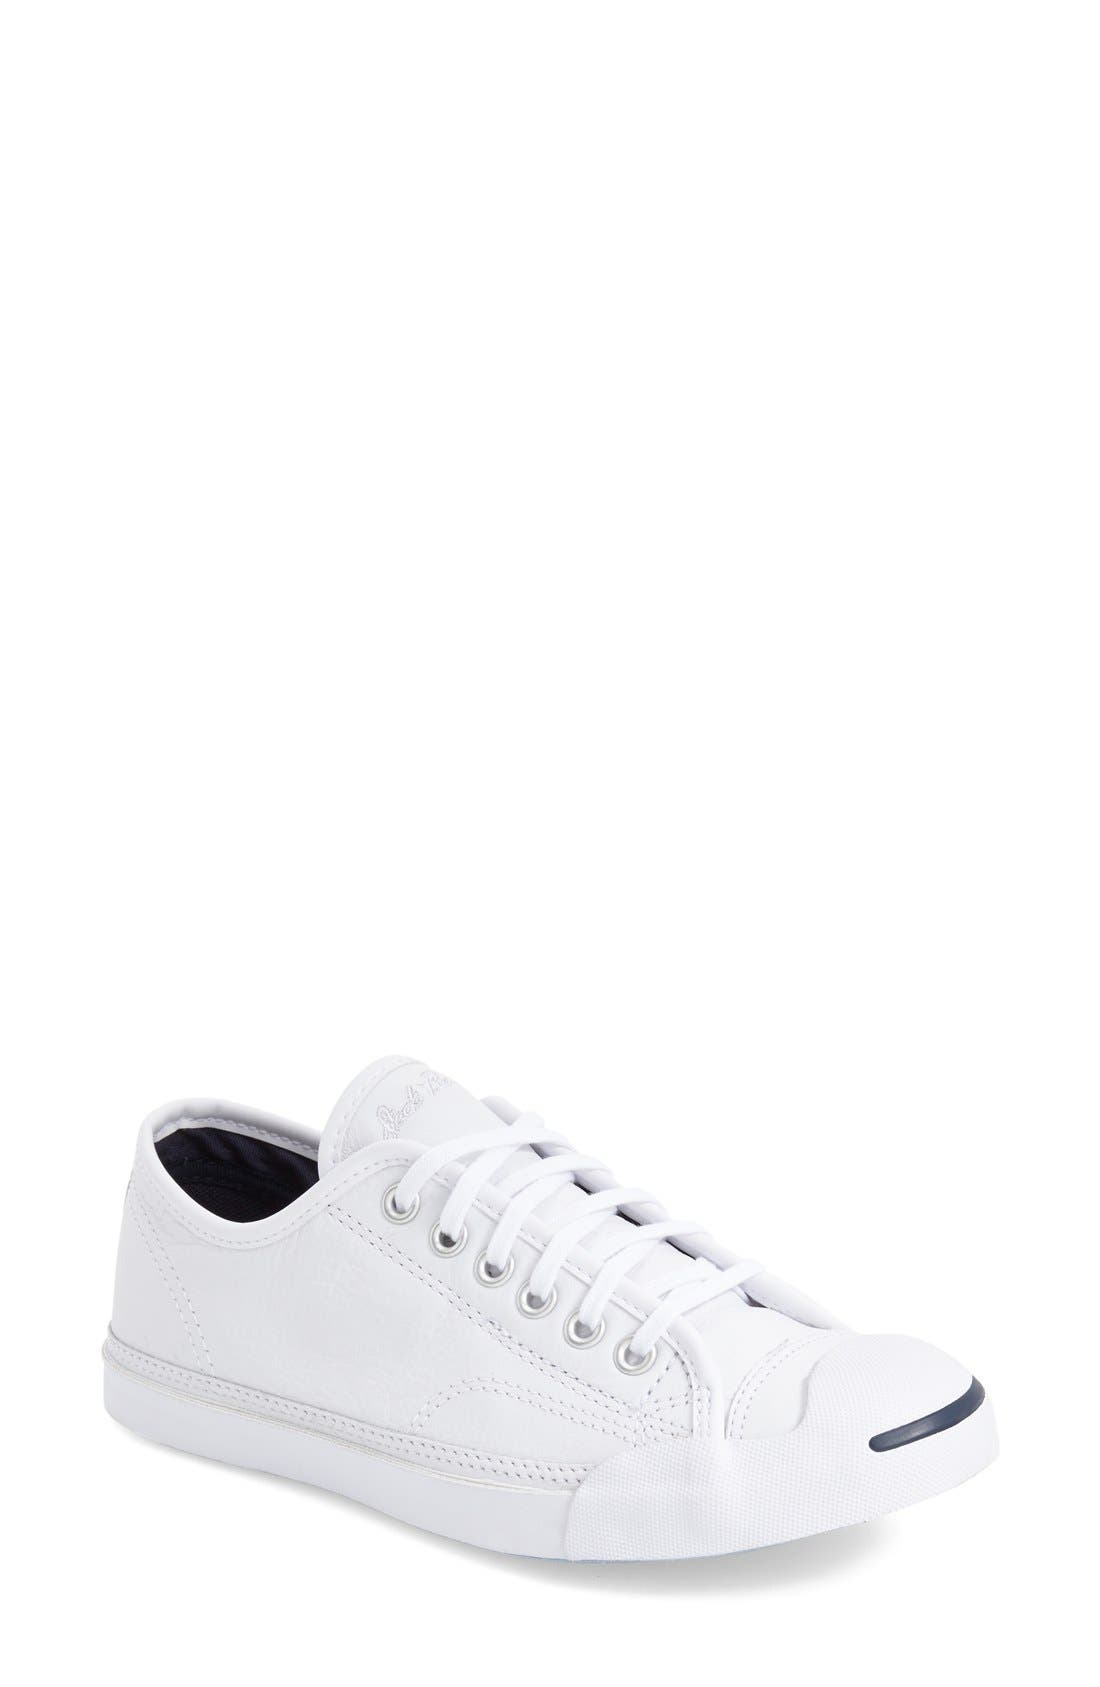 Main Image - Converse 'Jack Purcell' Low Top Sneaker (Women)